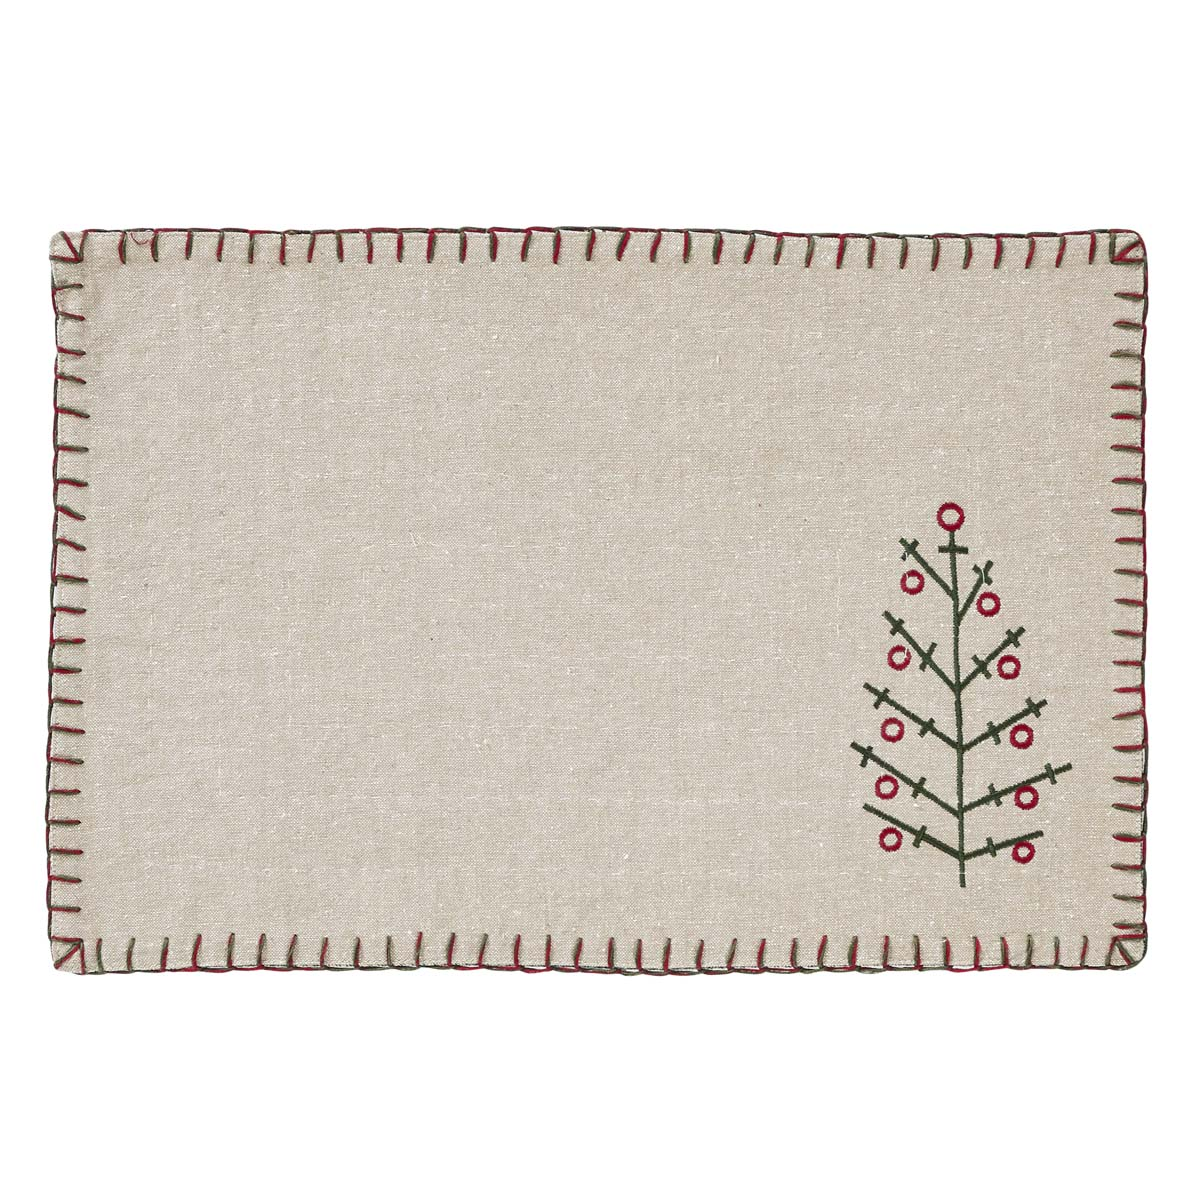 Tidings Placemat Set of 6 12x18